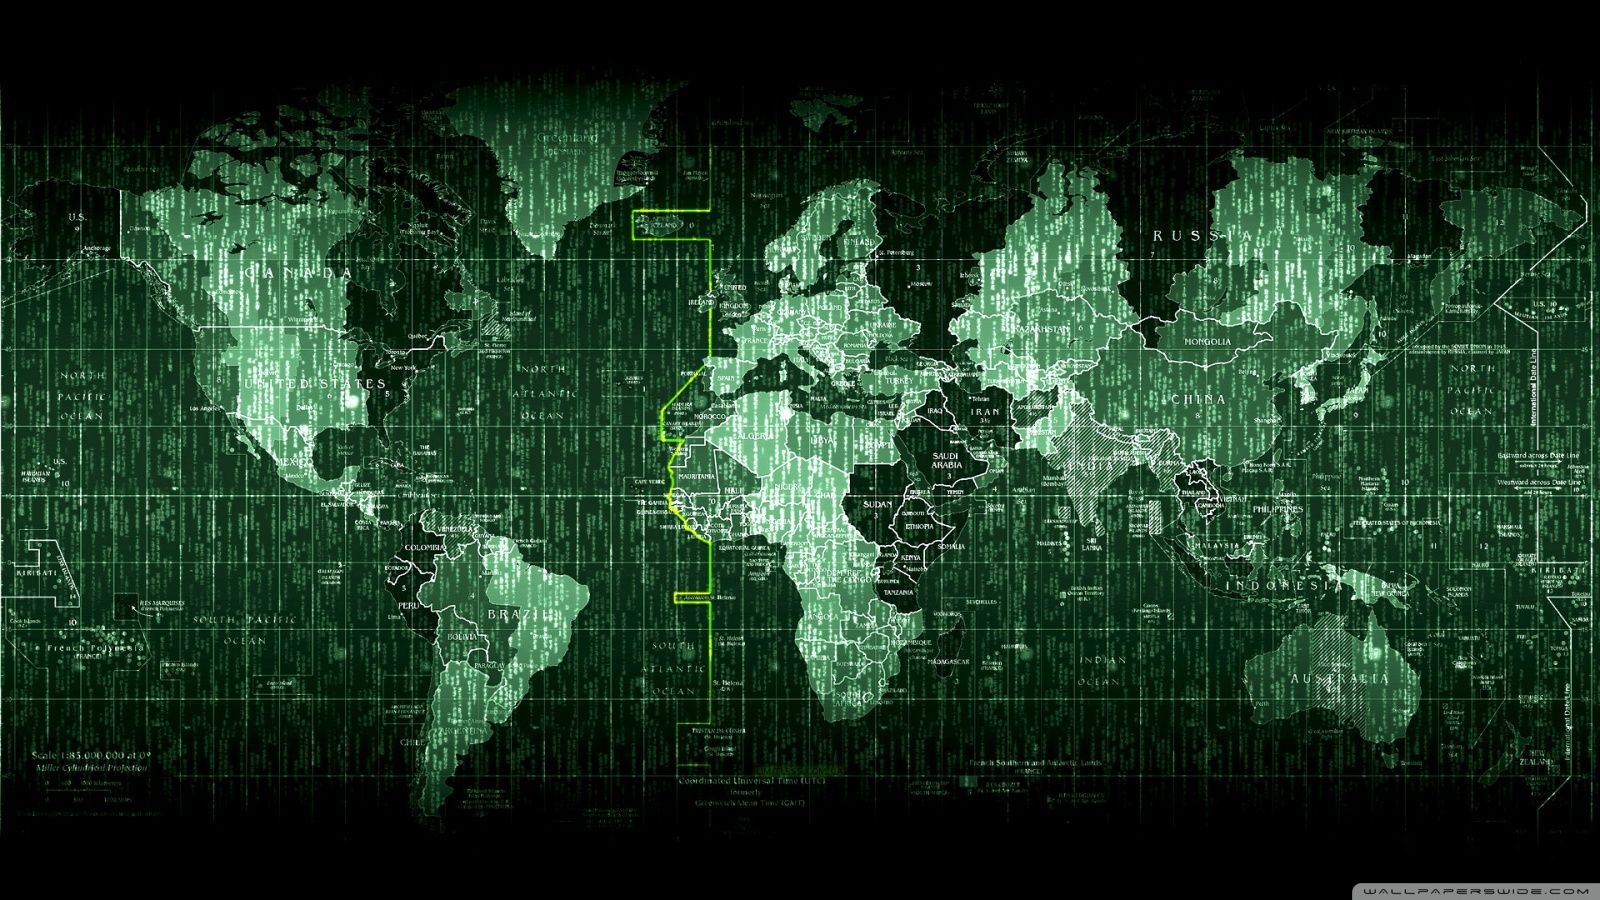 Matrix code world map hd desktop wallpaper high definition matrix code world map hd desktop wallpaper high definition gumiabroncs